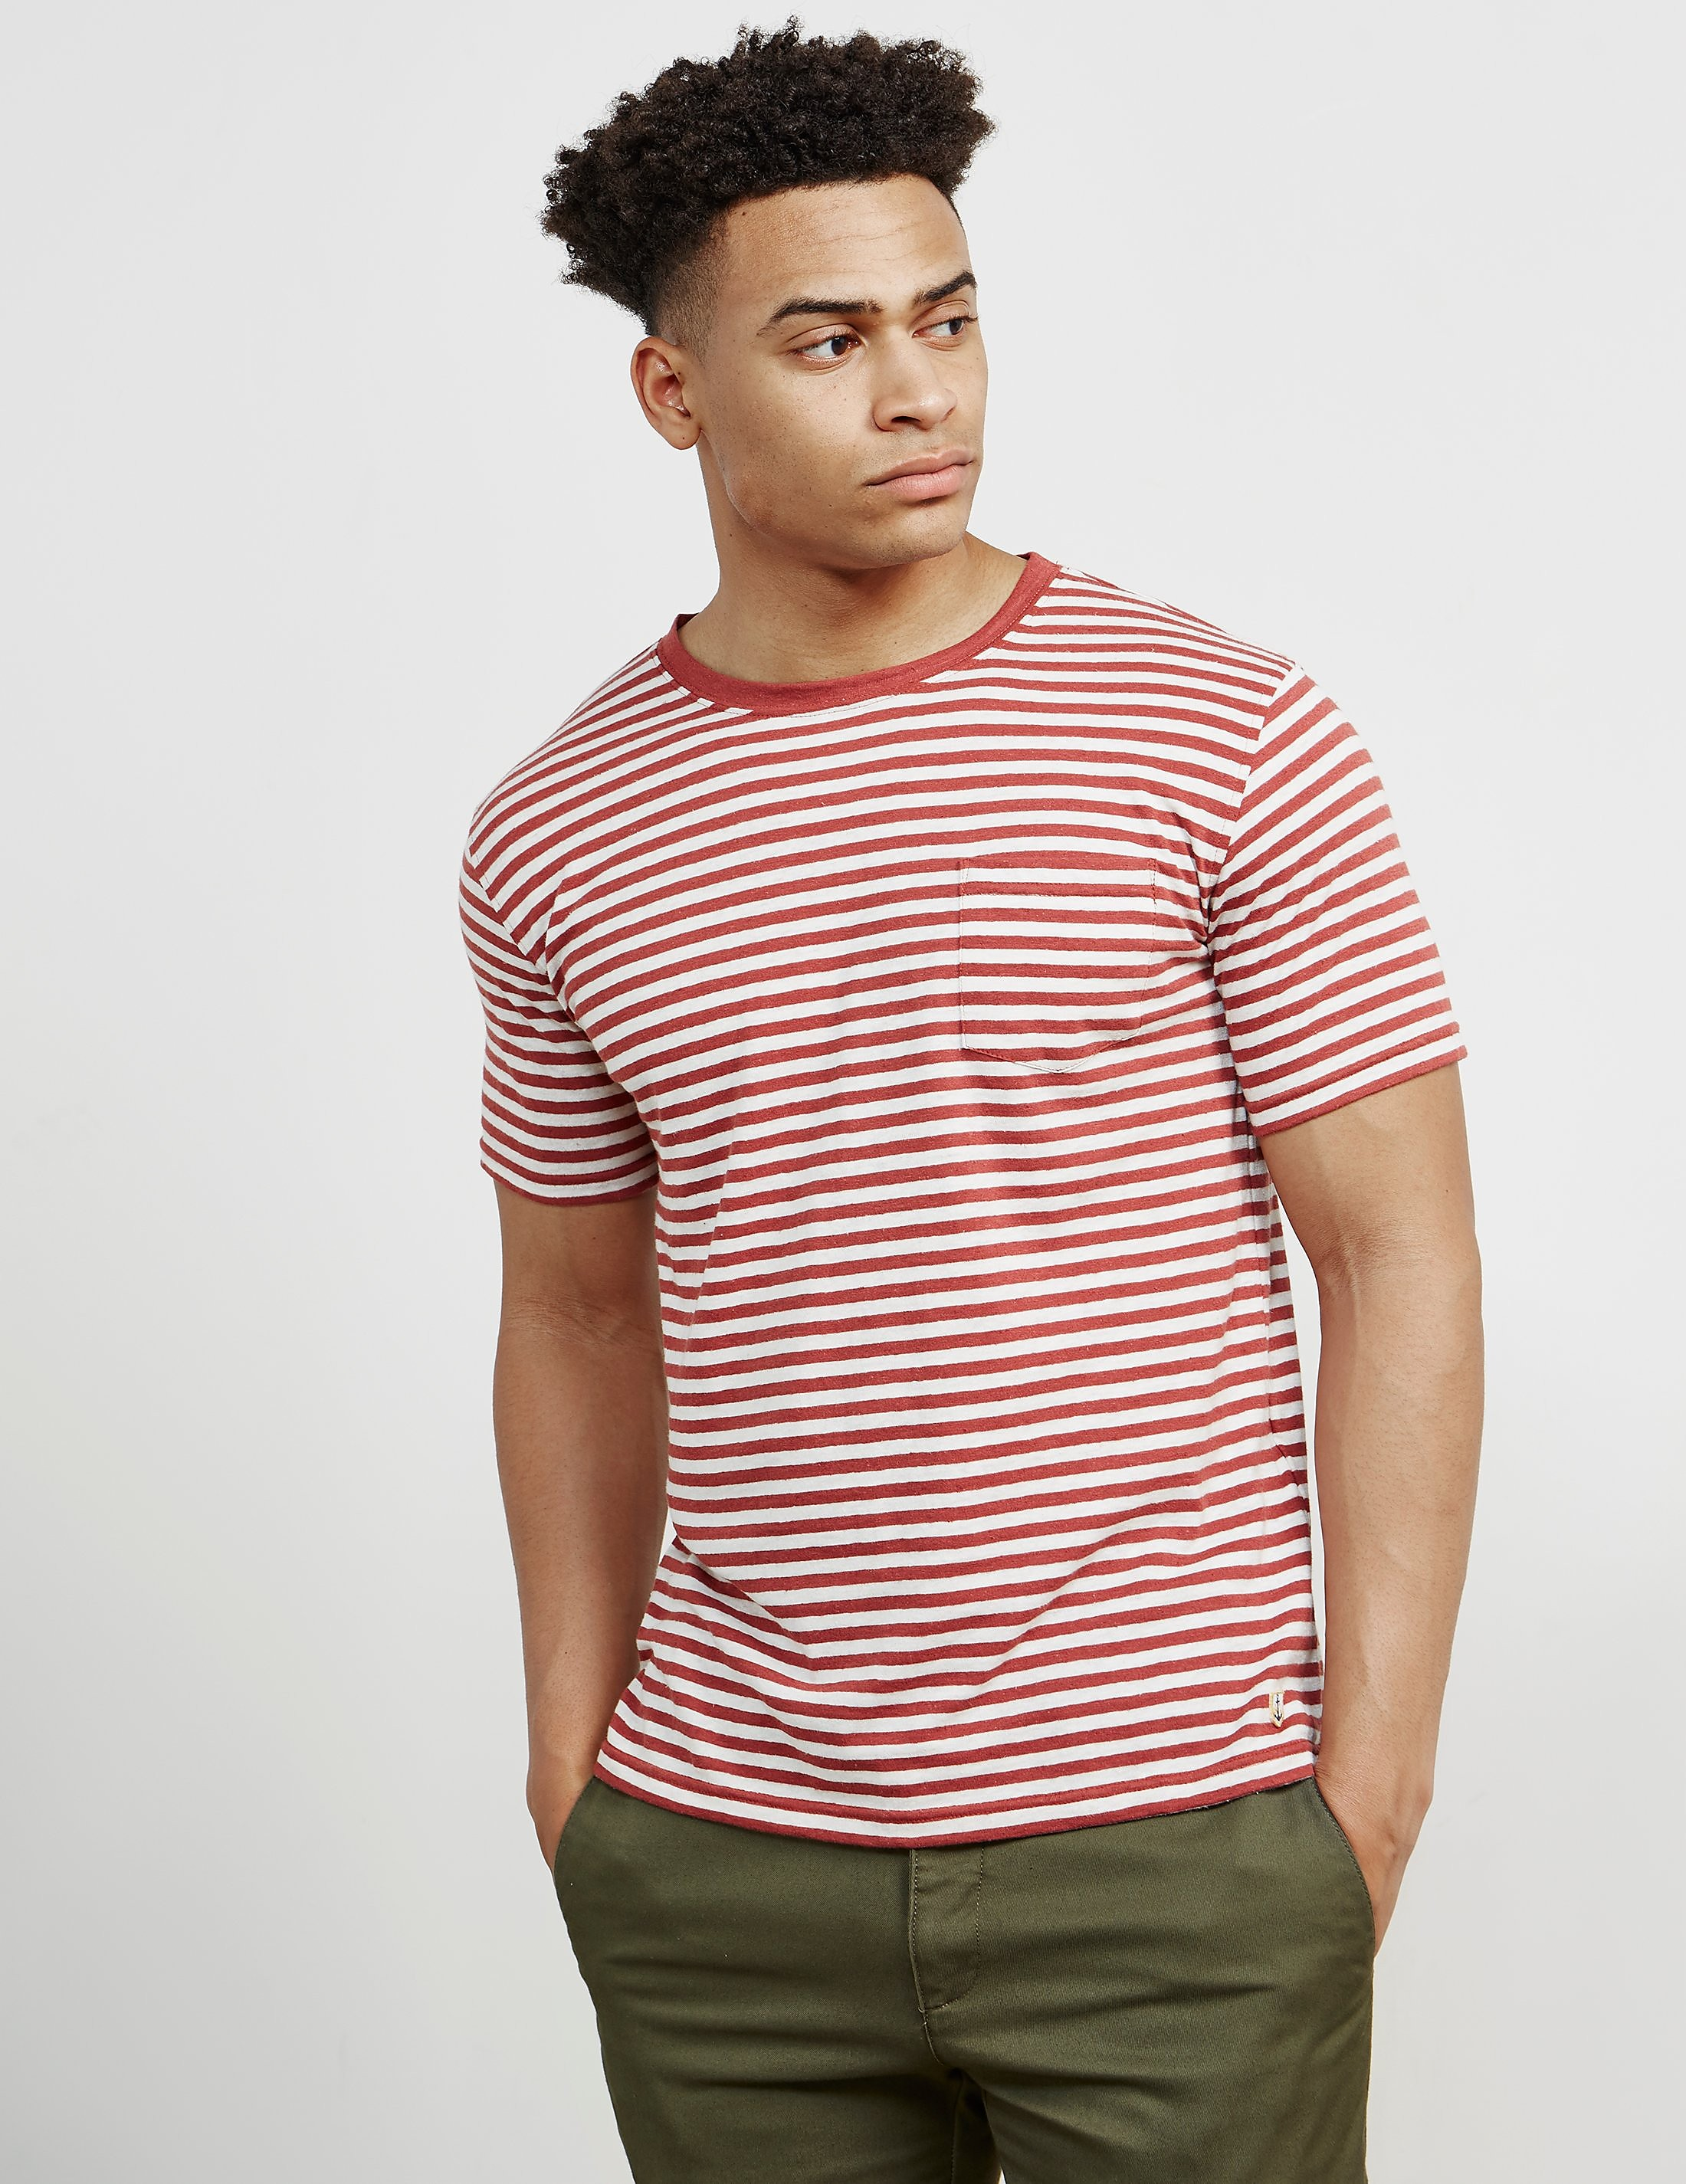 Armor Lux Heritage Short Sleeve T-Shirt